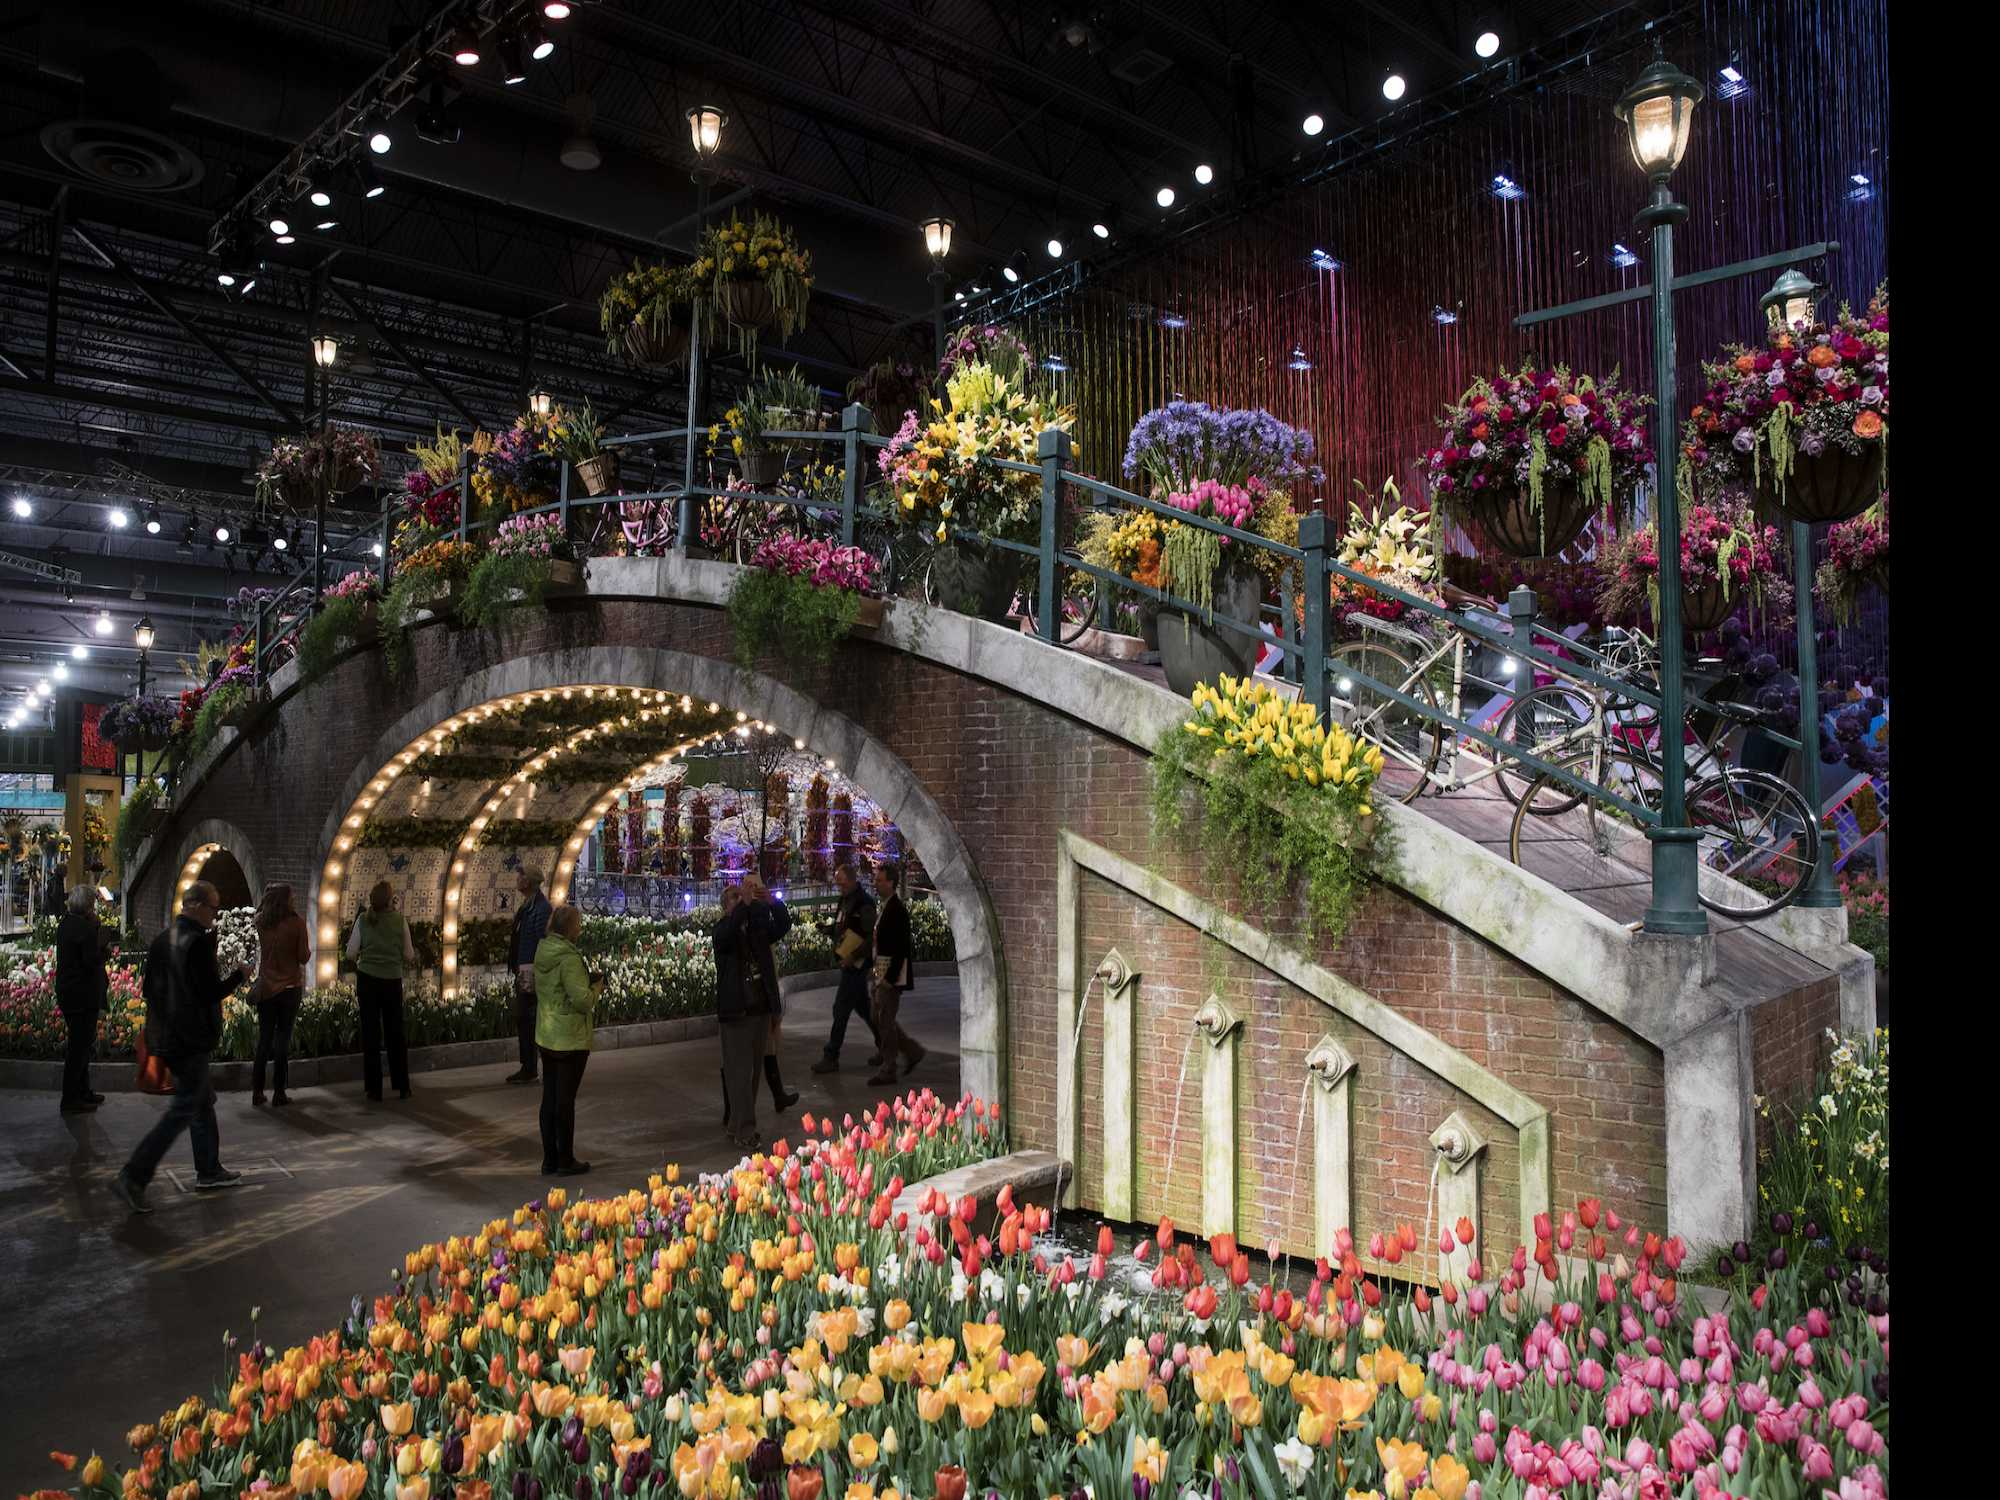 Philly Flower Show Dives Into Spring